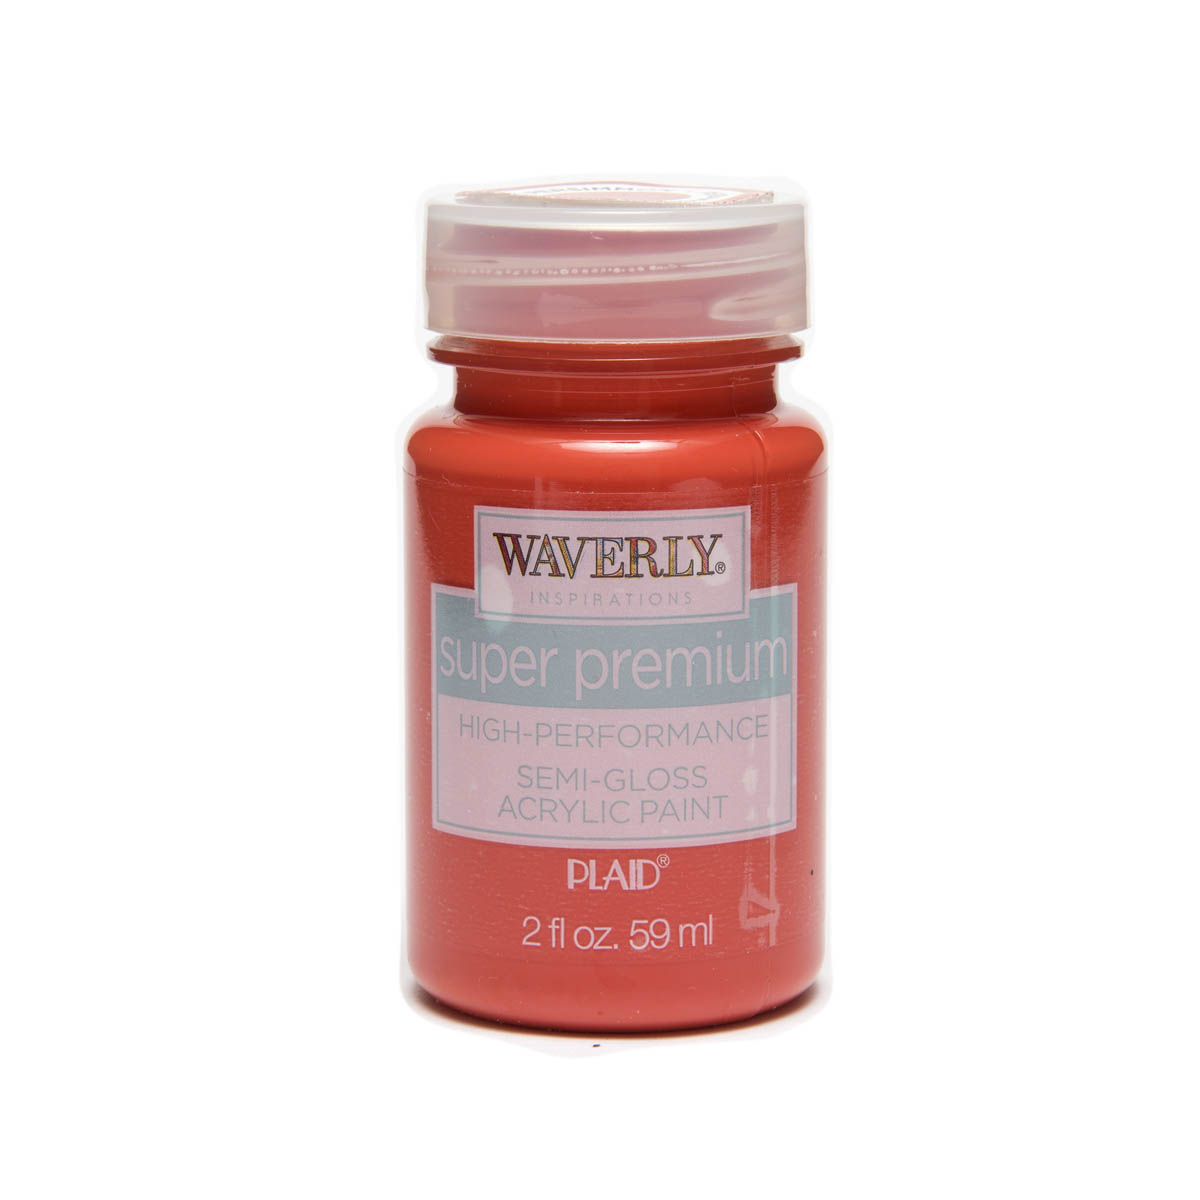 Waverly ® Inspirations Super Premium Semi-Gloss Acrylic Paint - Persimmon, 2 oz.